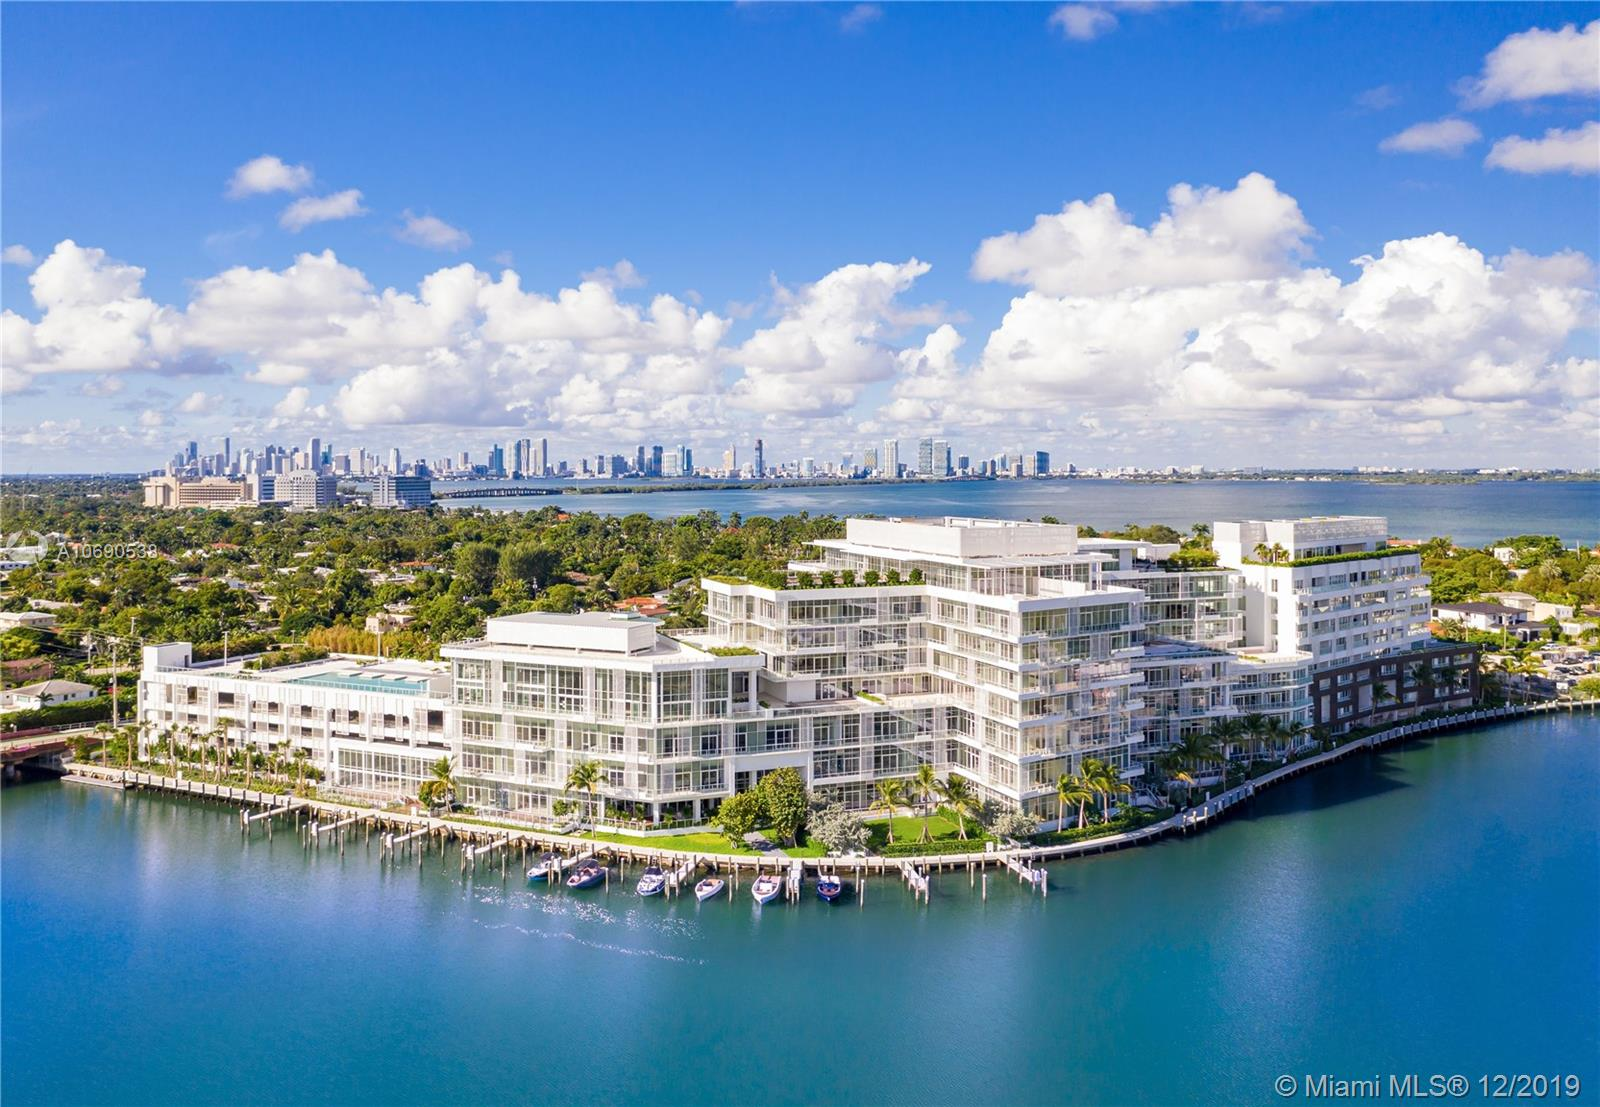 4701 Meridian Avenue, 520 - Miami Beach, Florida